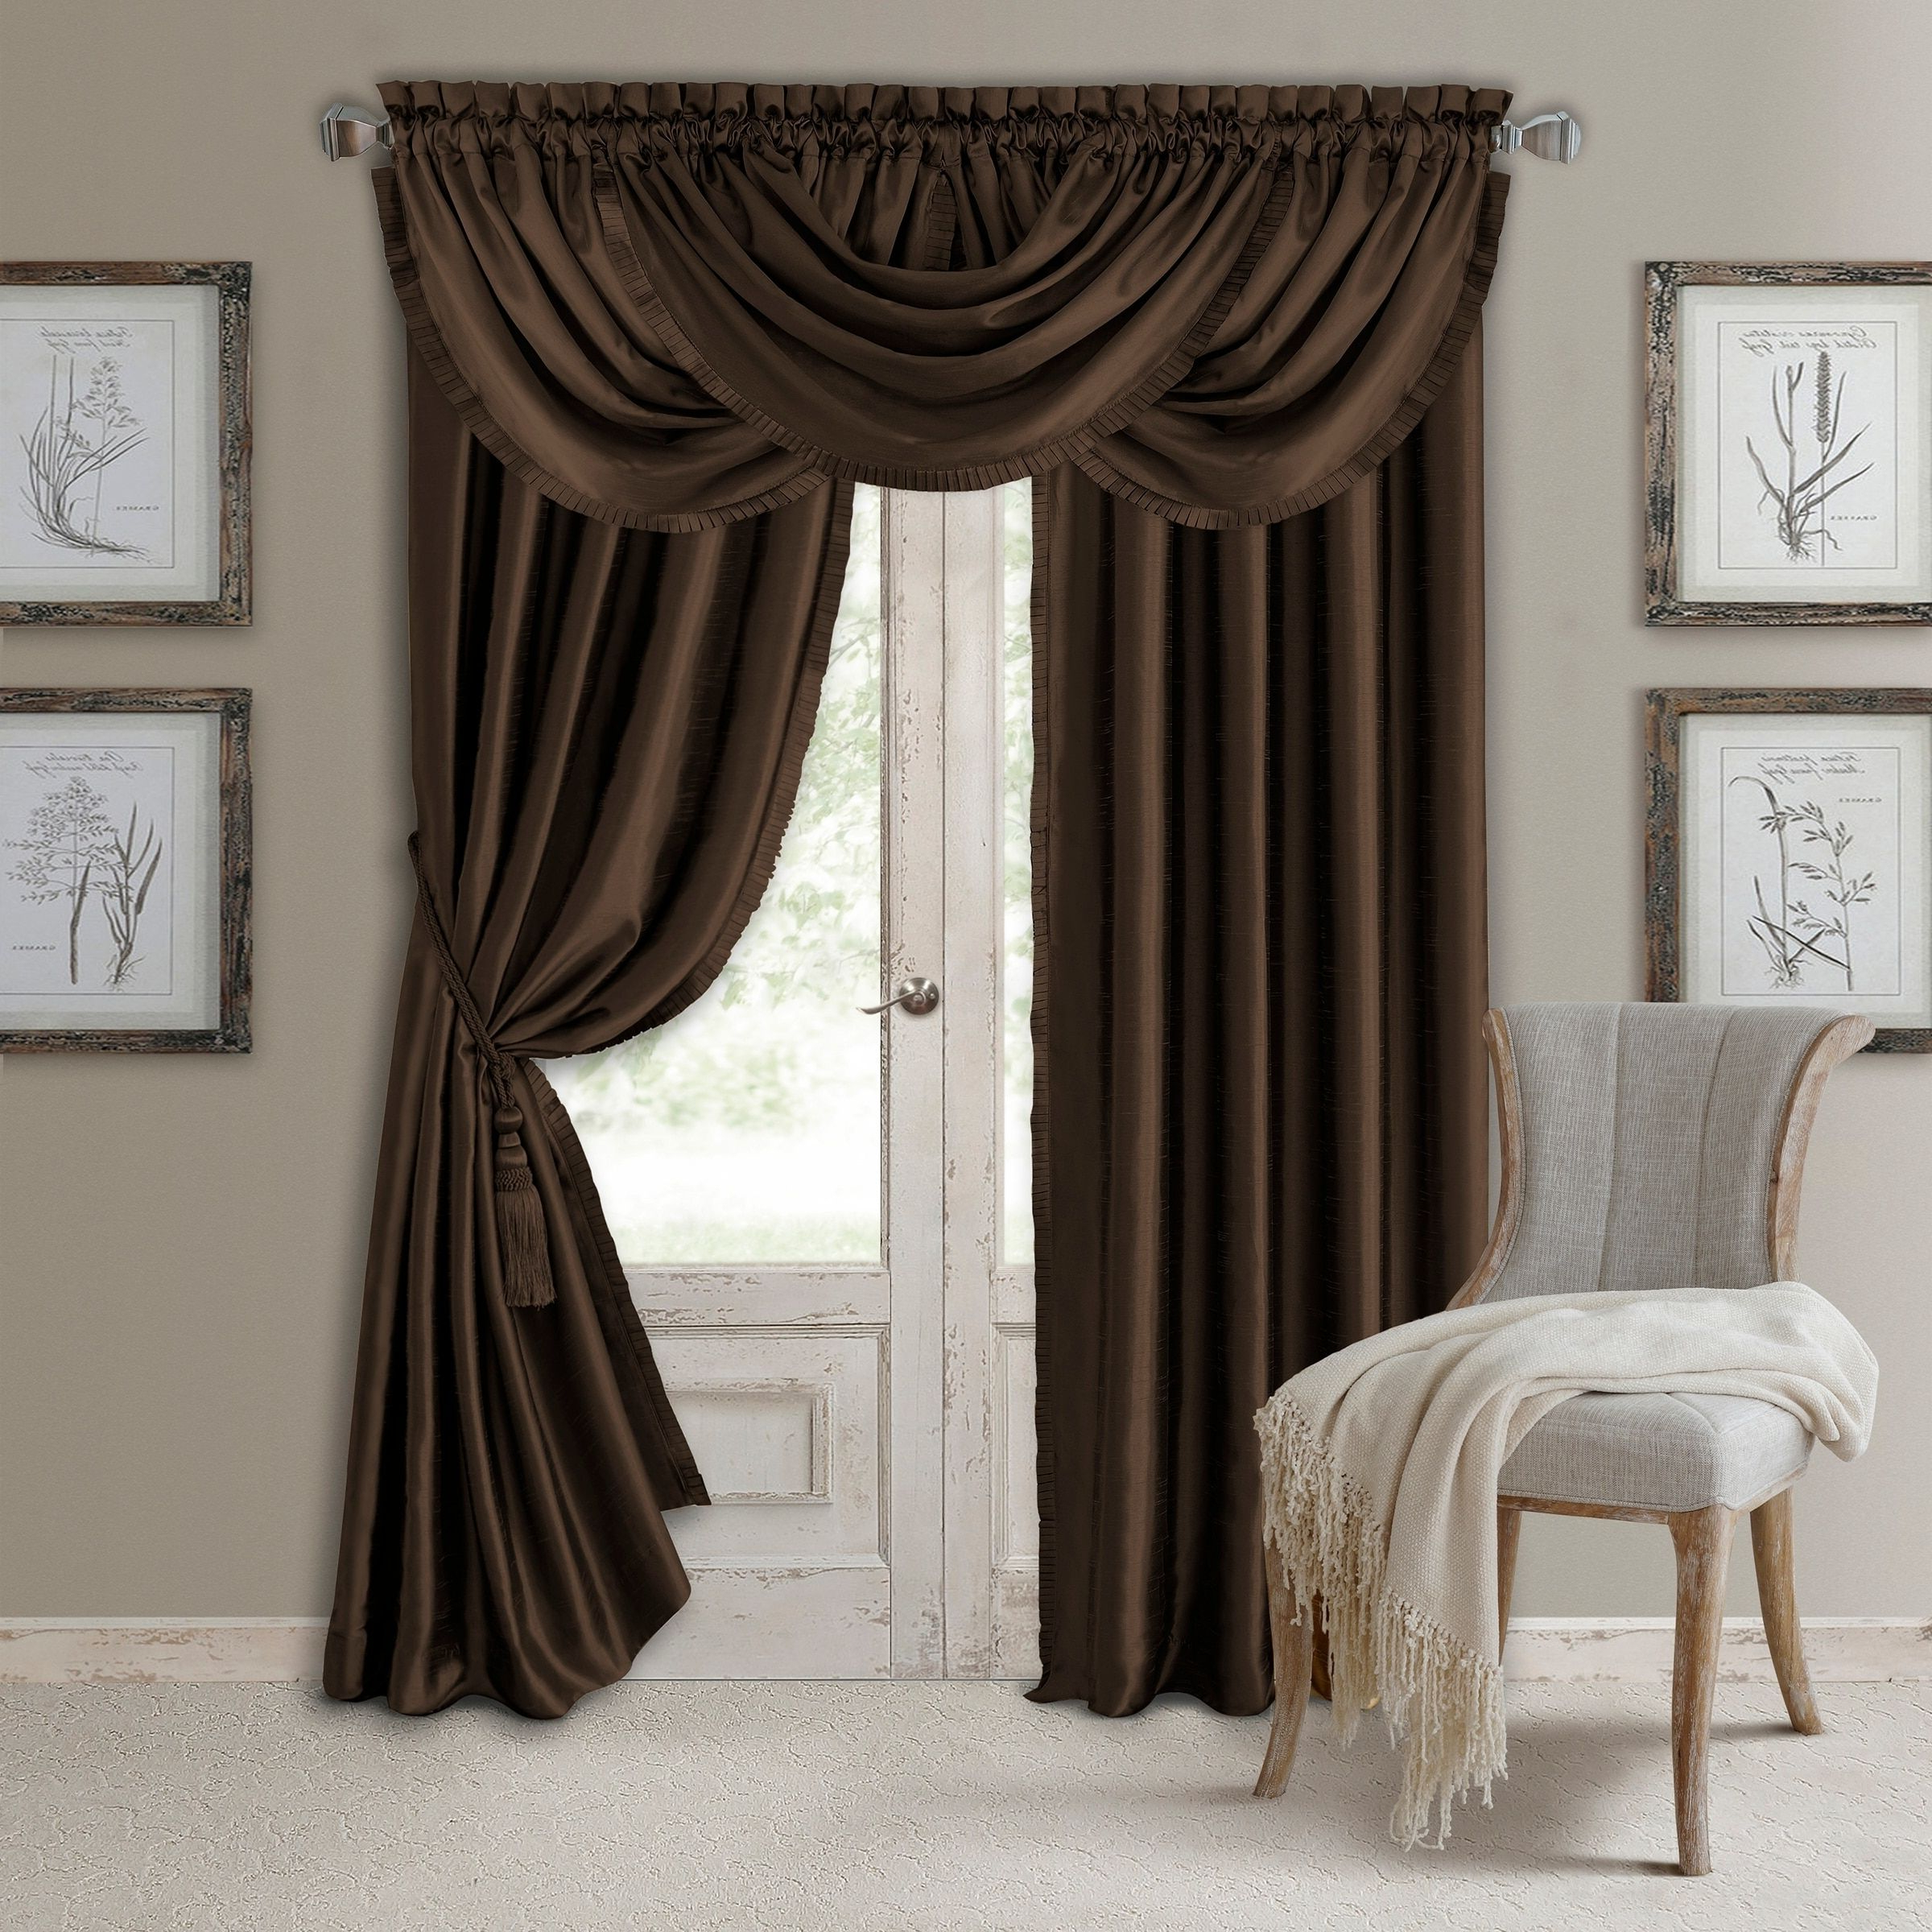 "Newest Elrene Versailles Pleated Blackout Curtain Panel (52"" W X 95 For Elrene Versailles Pleated Blackout Curtain Panels (View 5 of 20)"